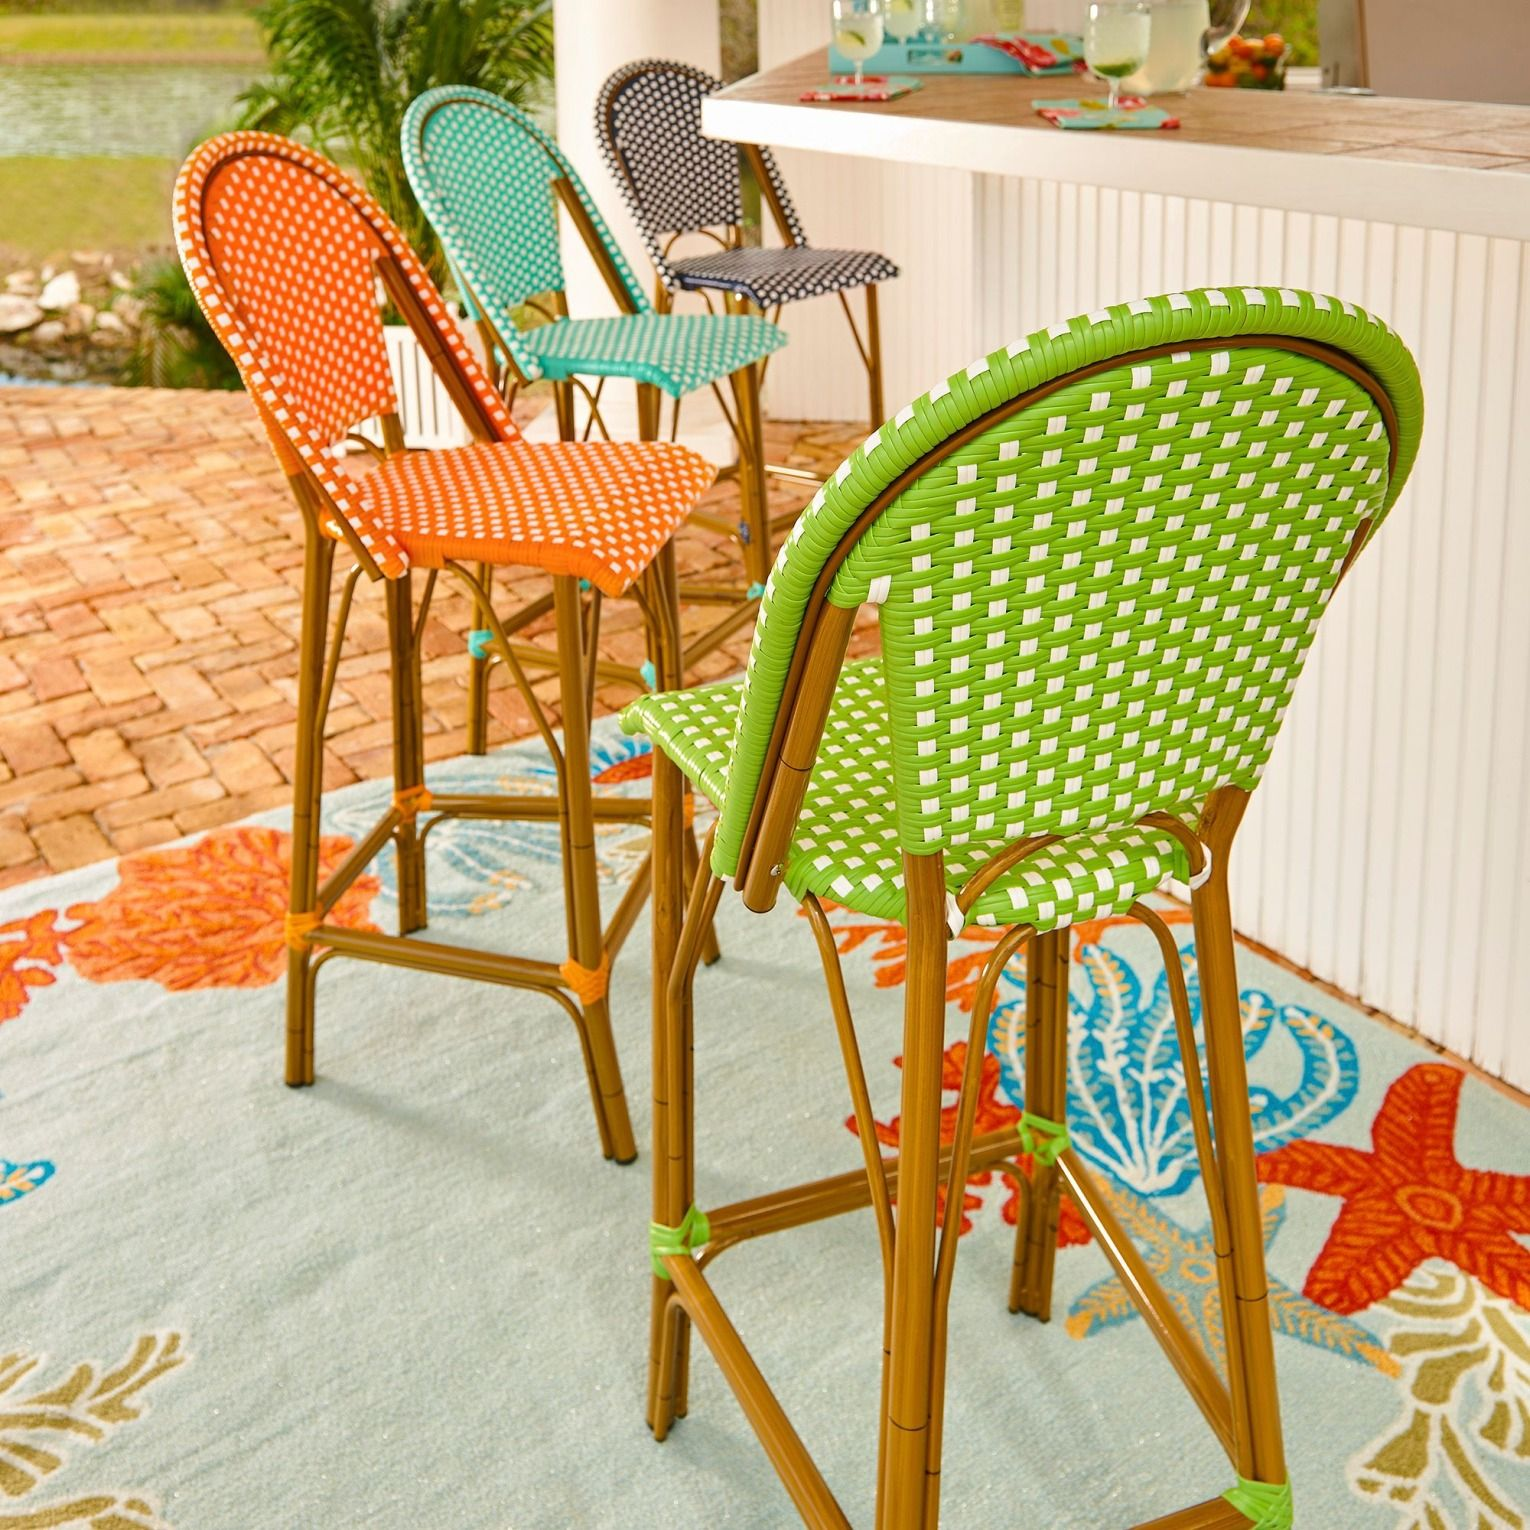 Colorful And Comfortable Resin Wicker Patio Furniture Instantly Updates A Or Deck These High Back Outdoor Bar Stools Are Weather Resistant